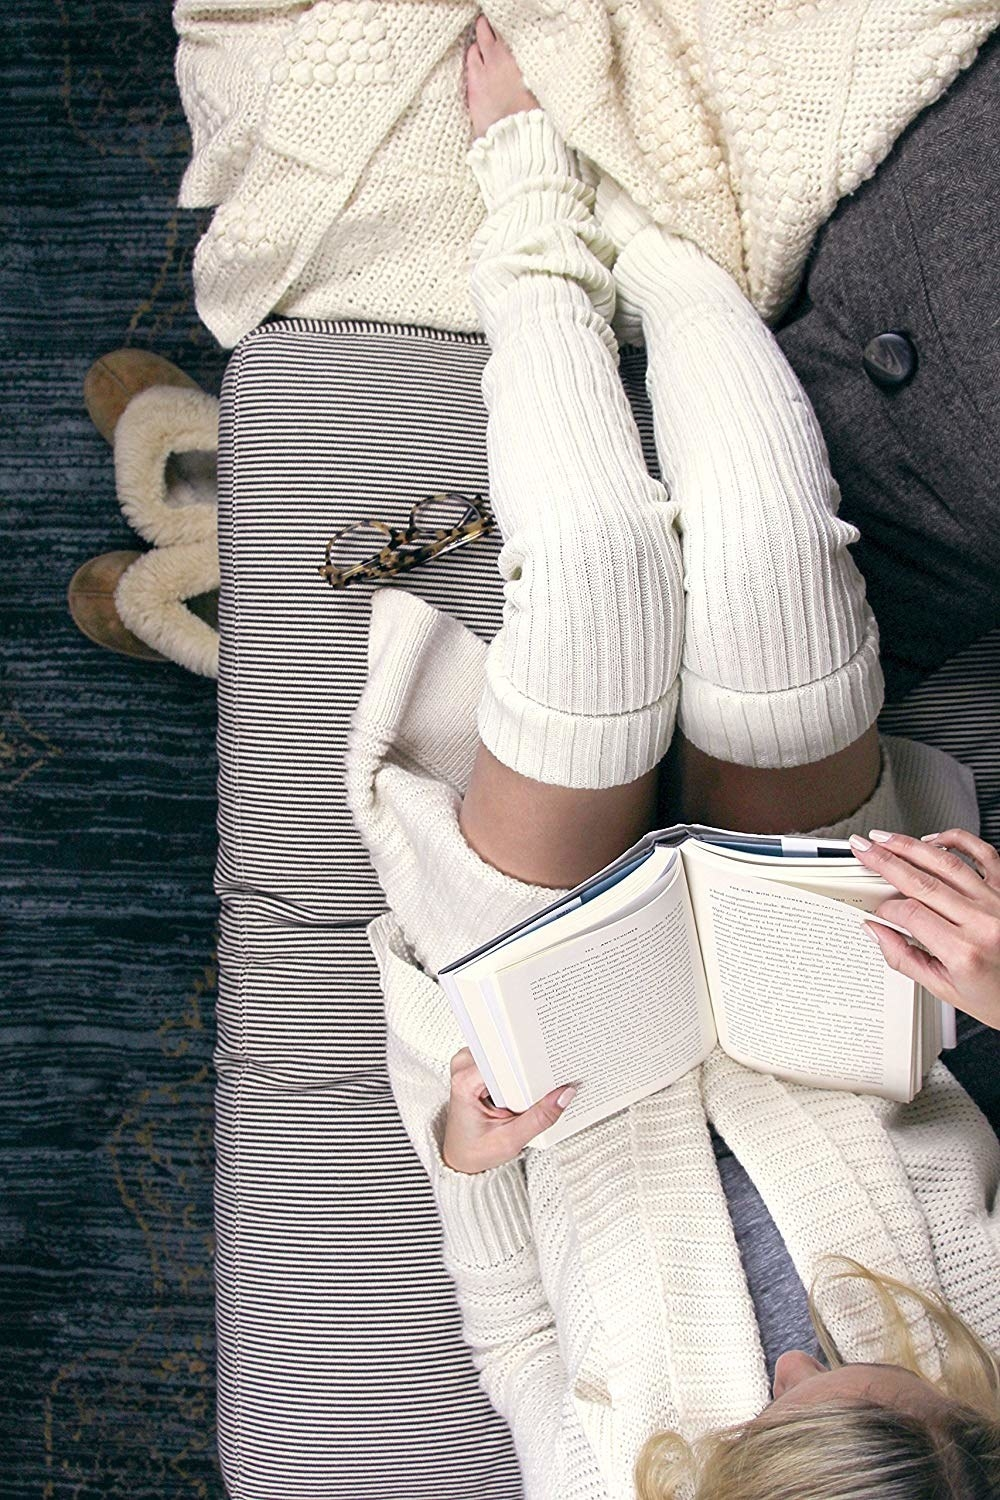 Person reading while wearing leg warmers and a sweater